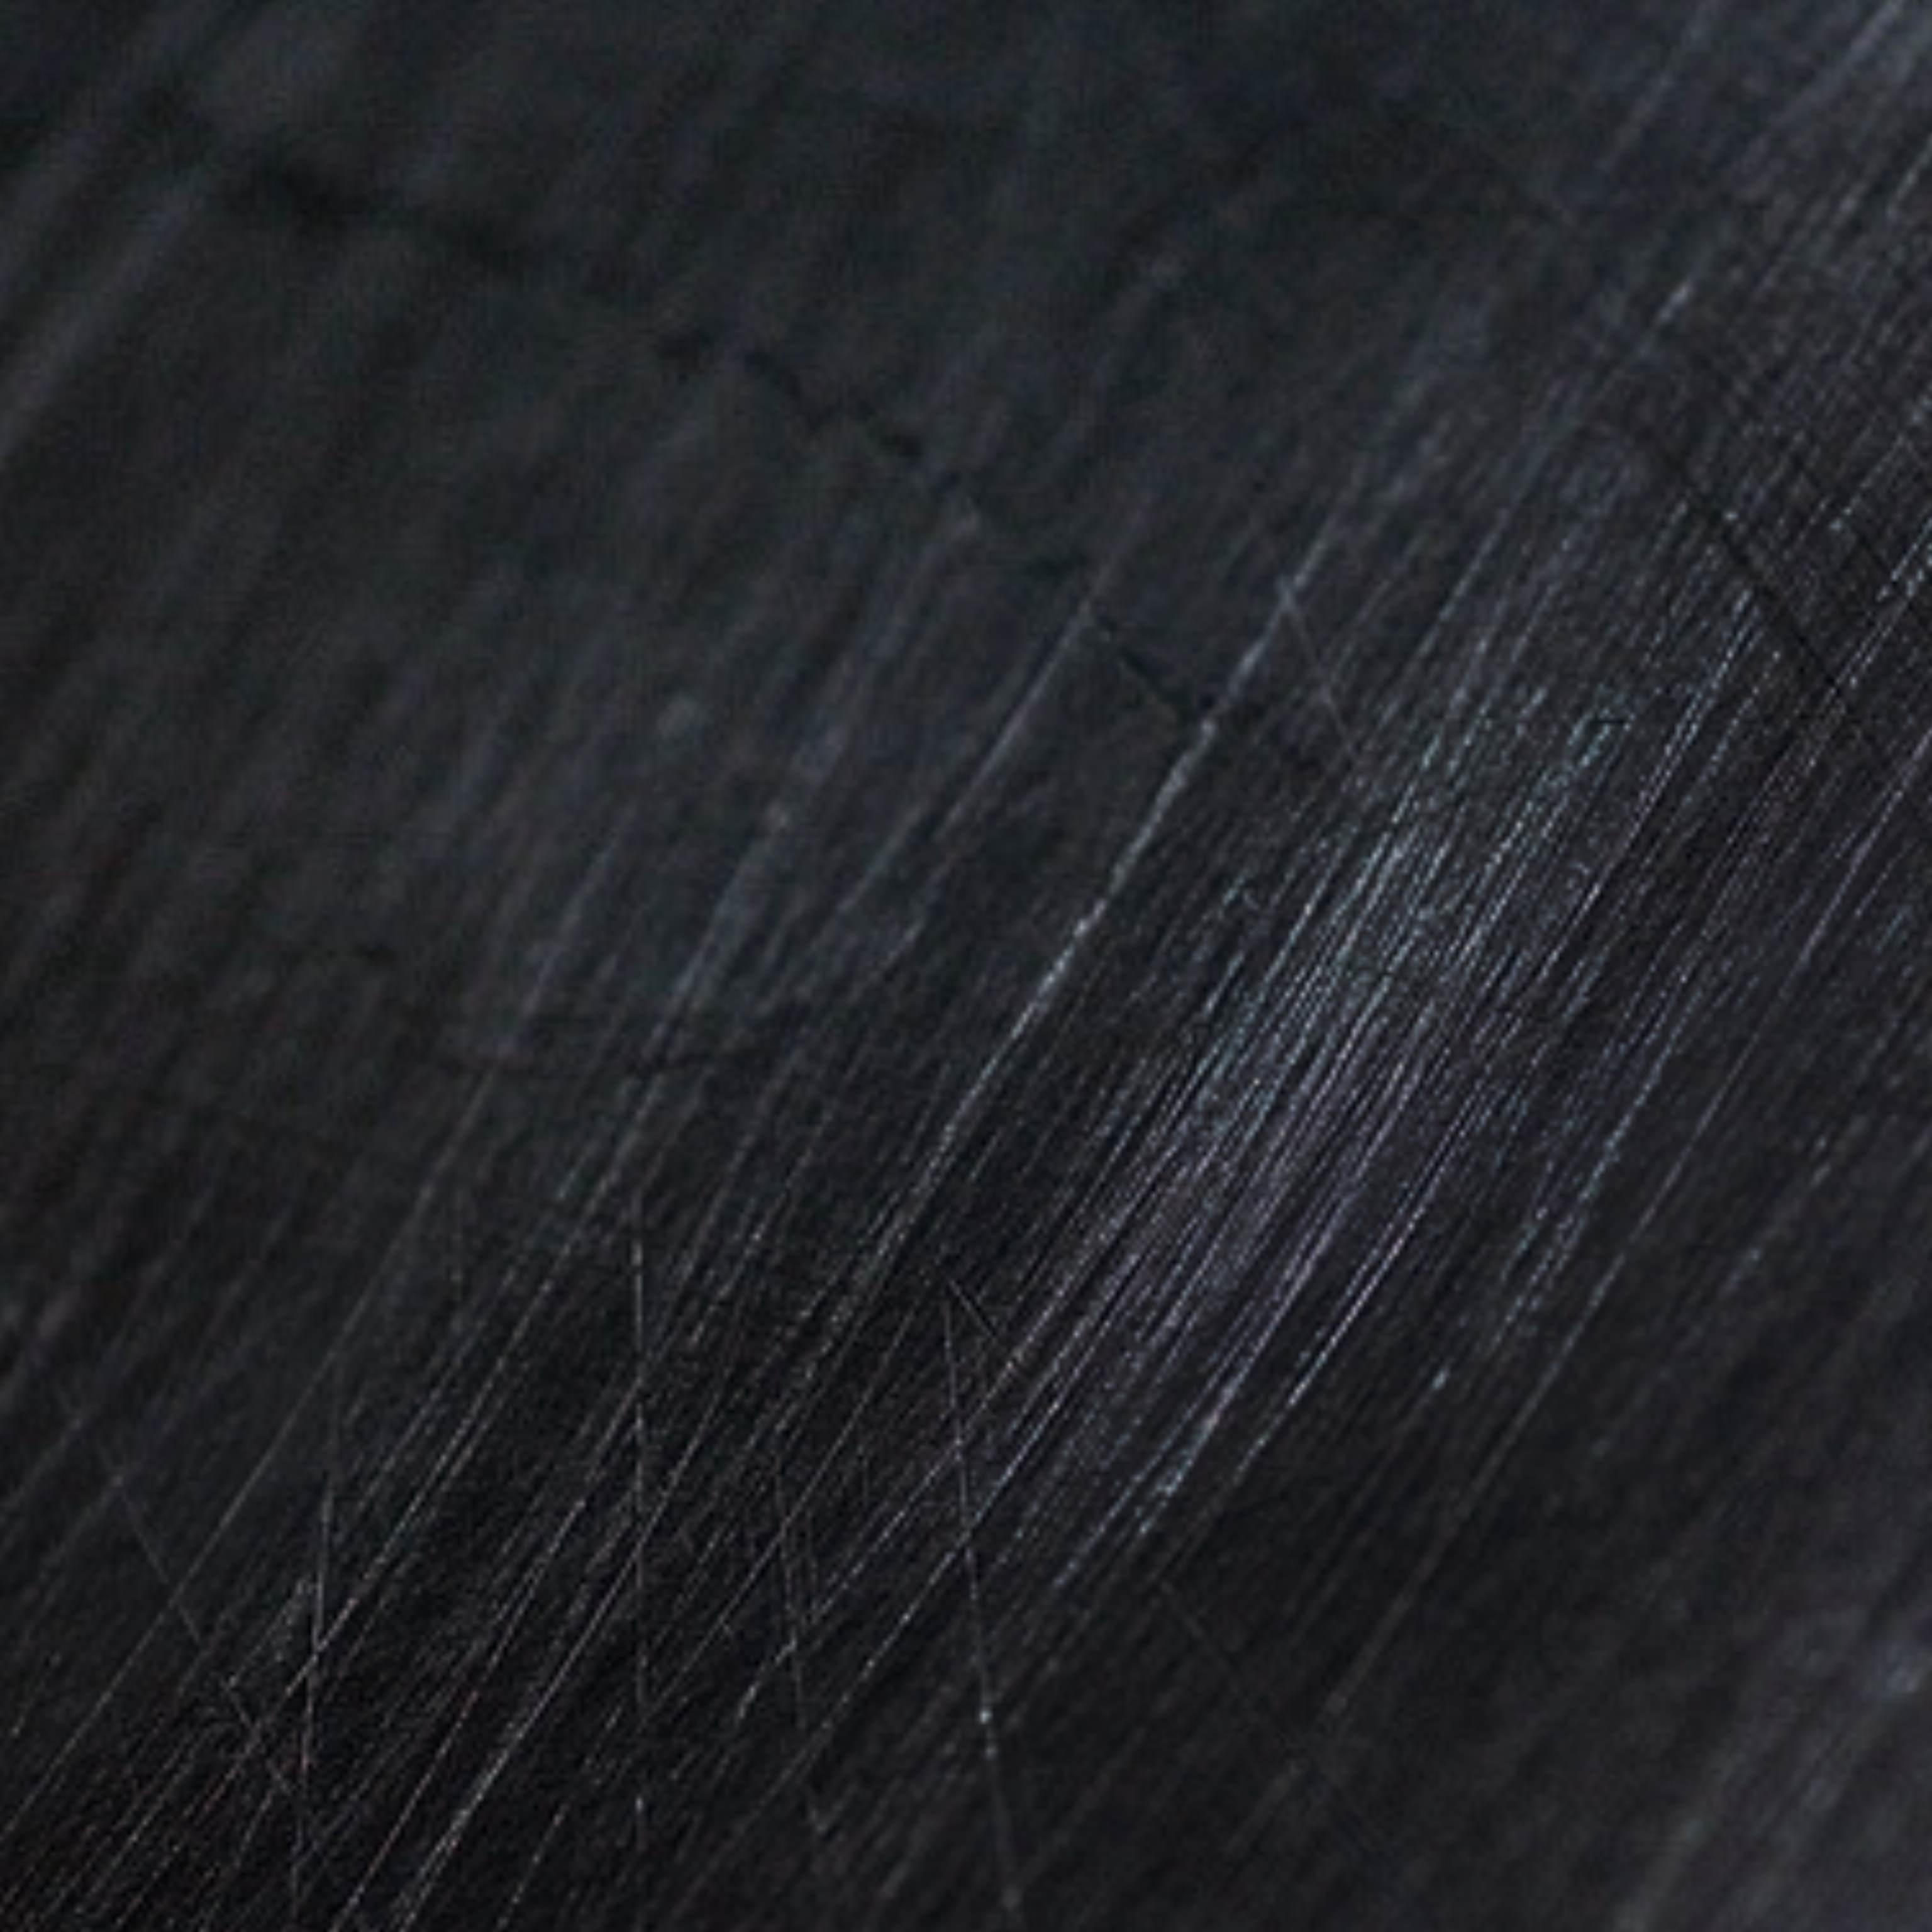 Black scratched texture